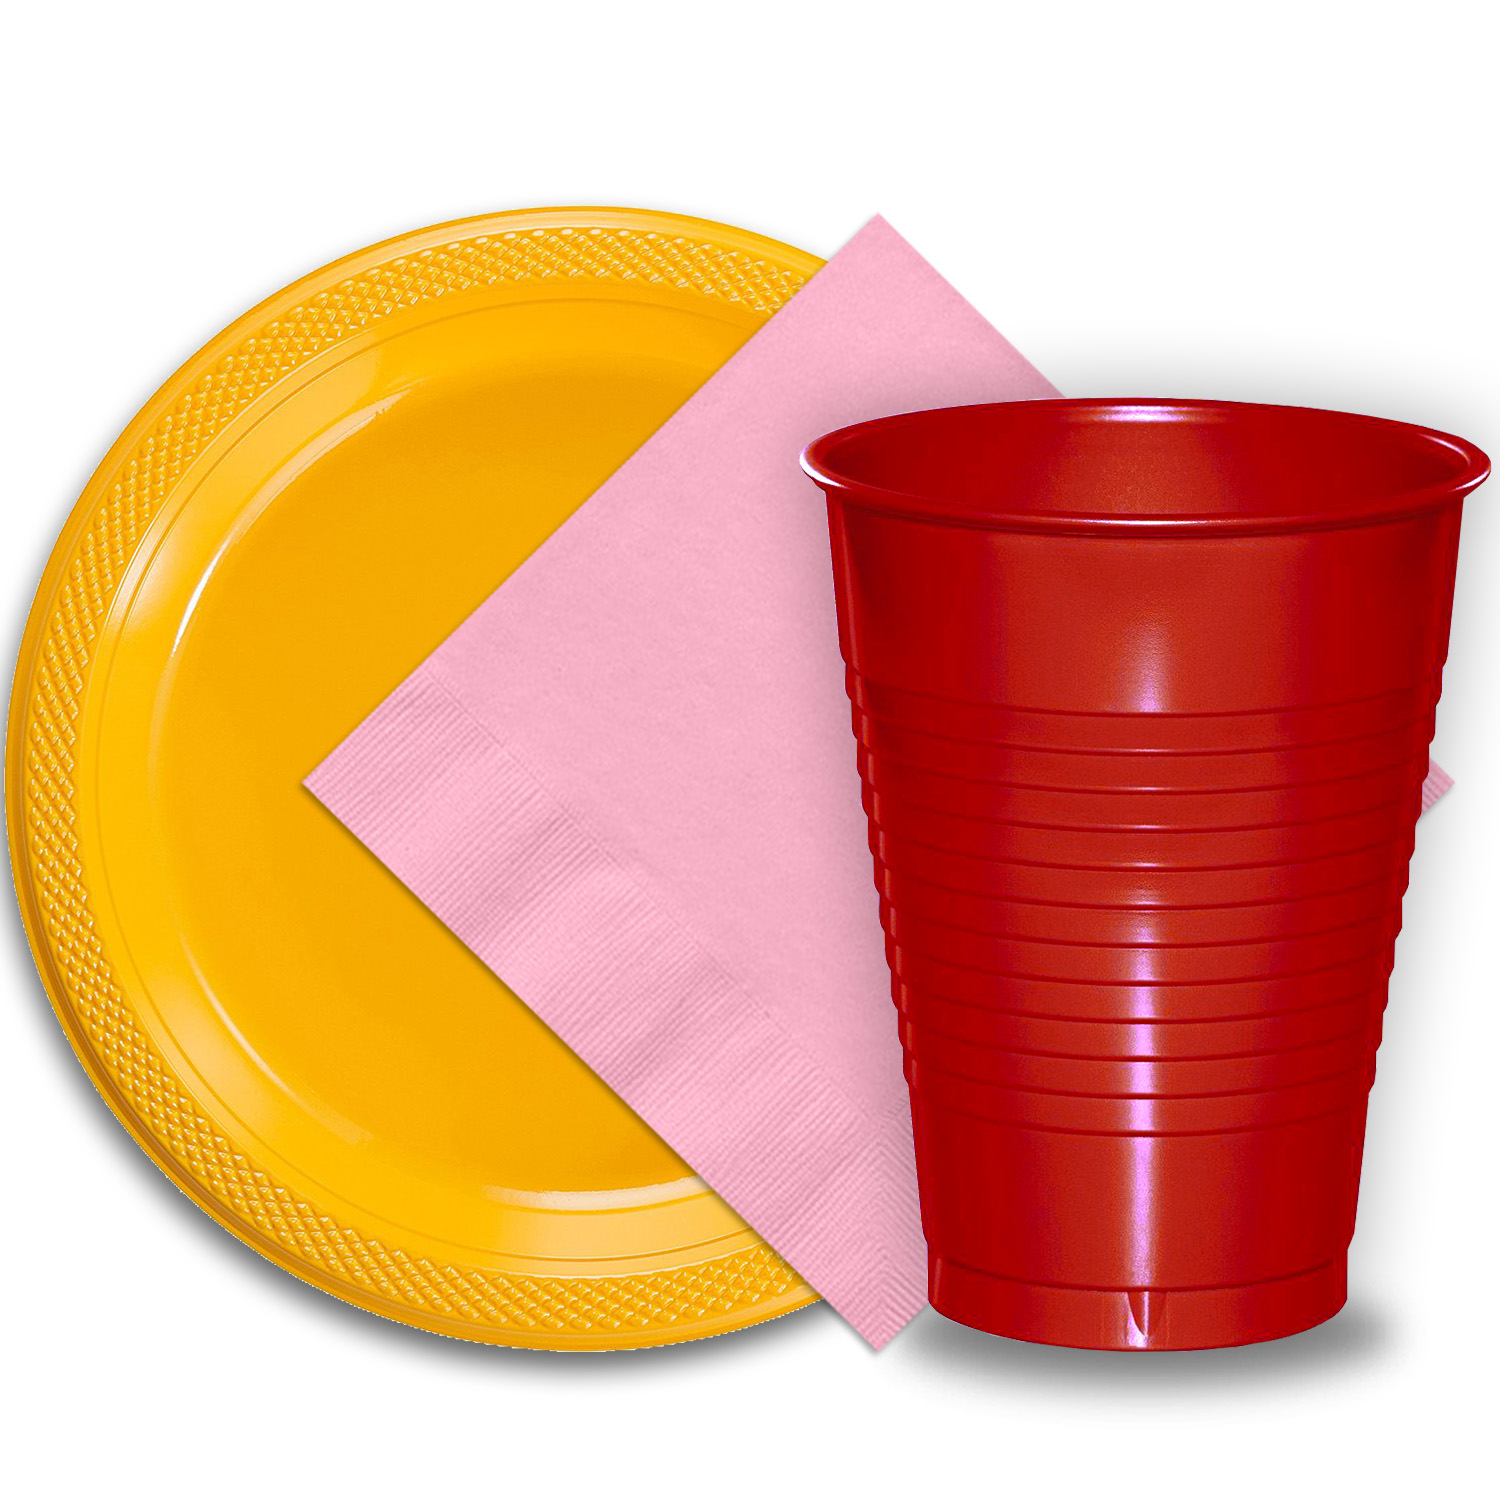 "50 Yellow Plastic Plates (9""), 50 Red Plastic Cups (12 oz.), and 50 Pink Paper Napkins, Dazzelling Colored Disposable Party Supplies Tableware Set for Fifty Guests."